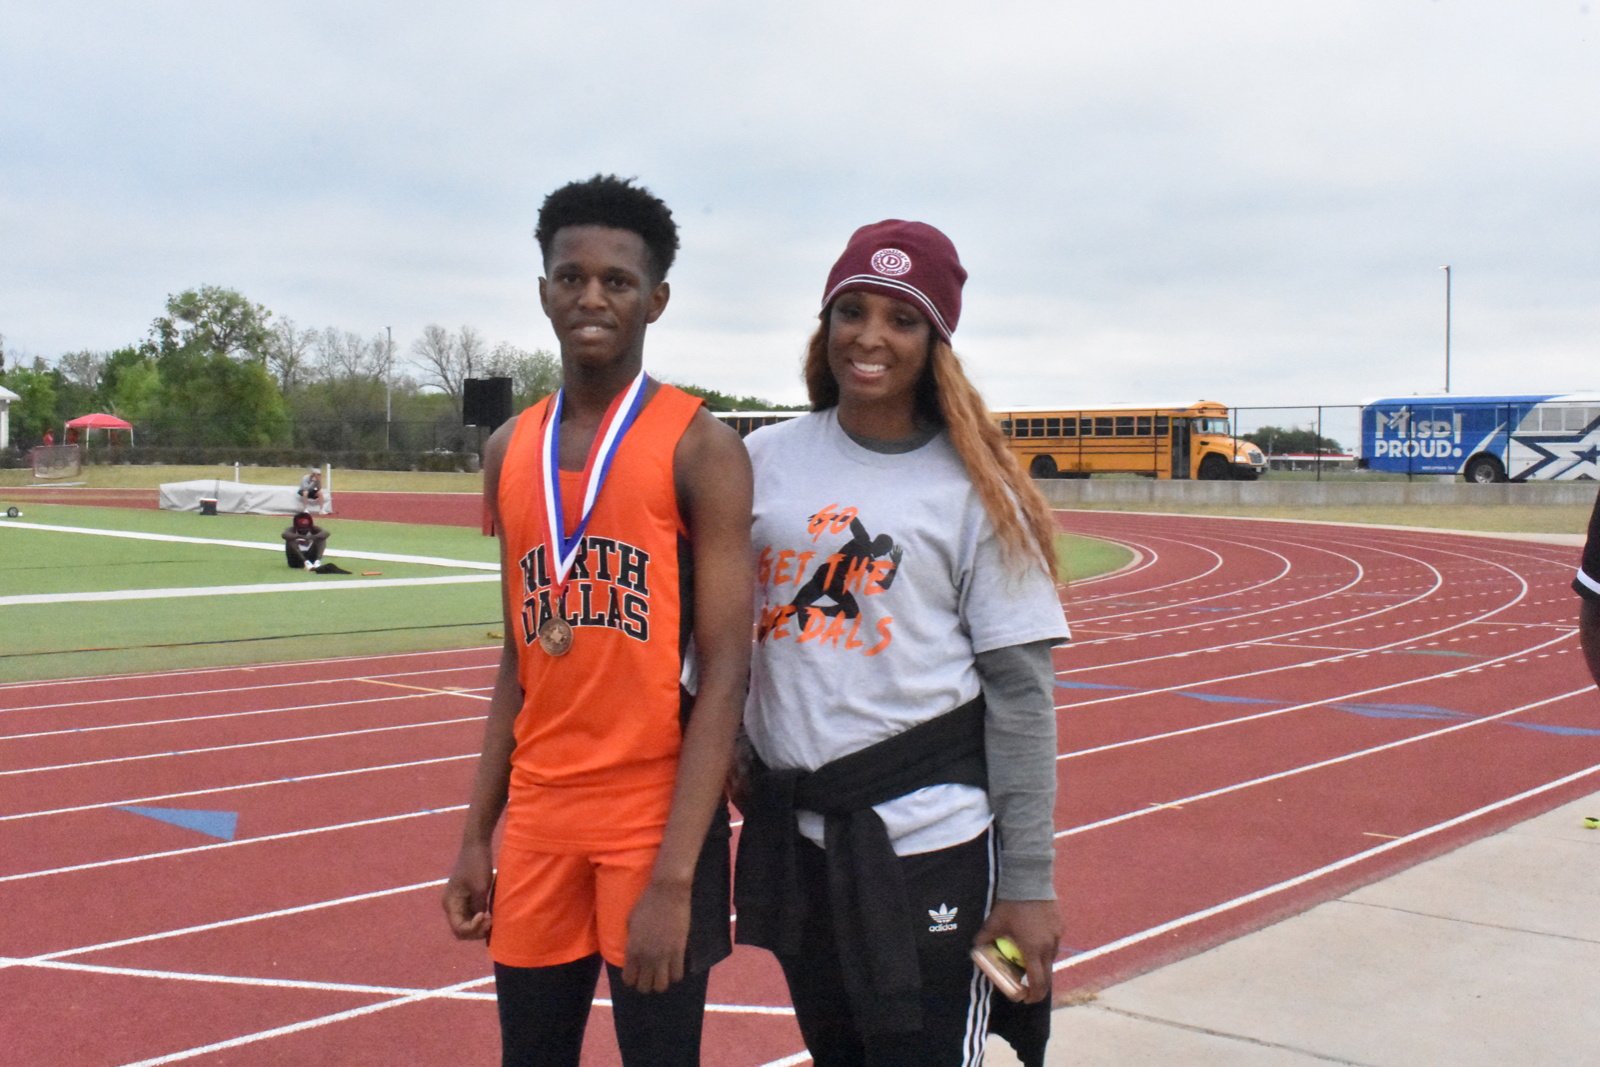 Photo gallery: North Dallas track team at Area meet — April 14, 2021